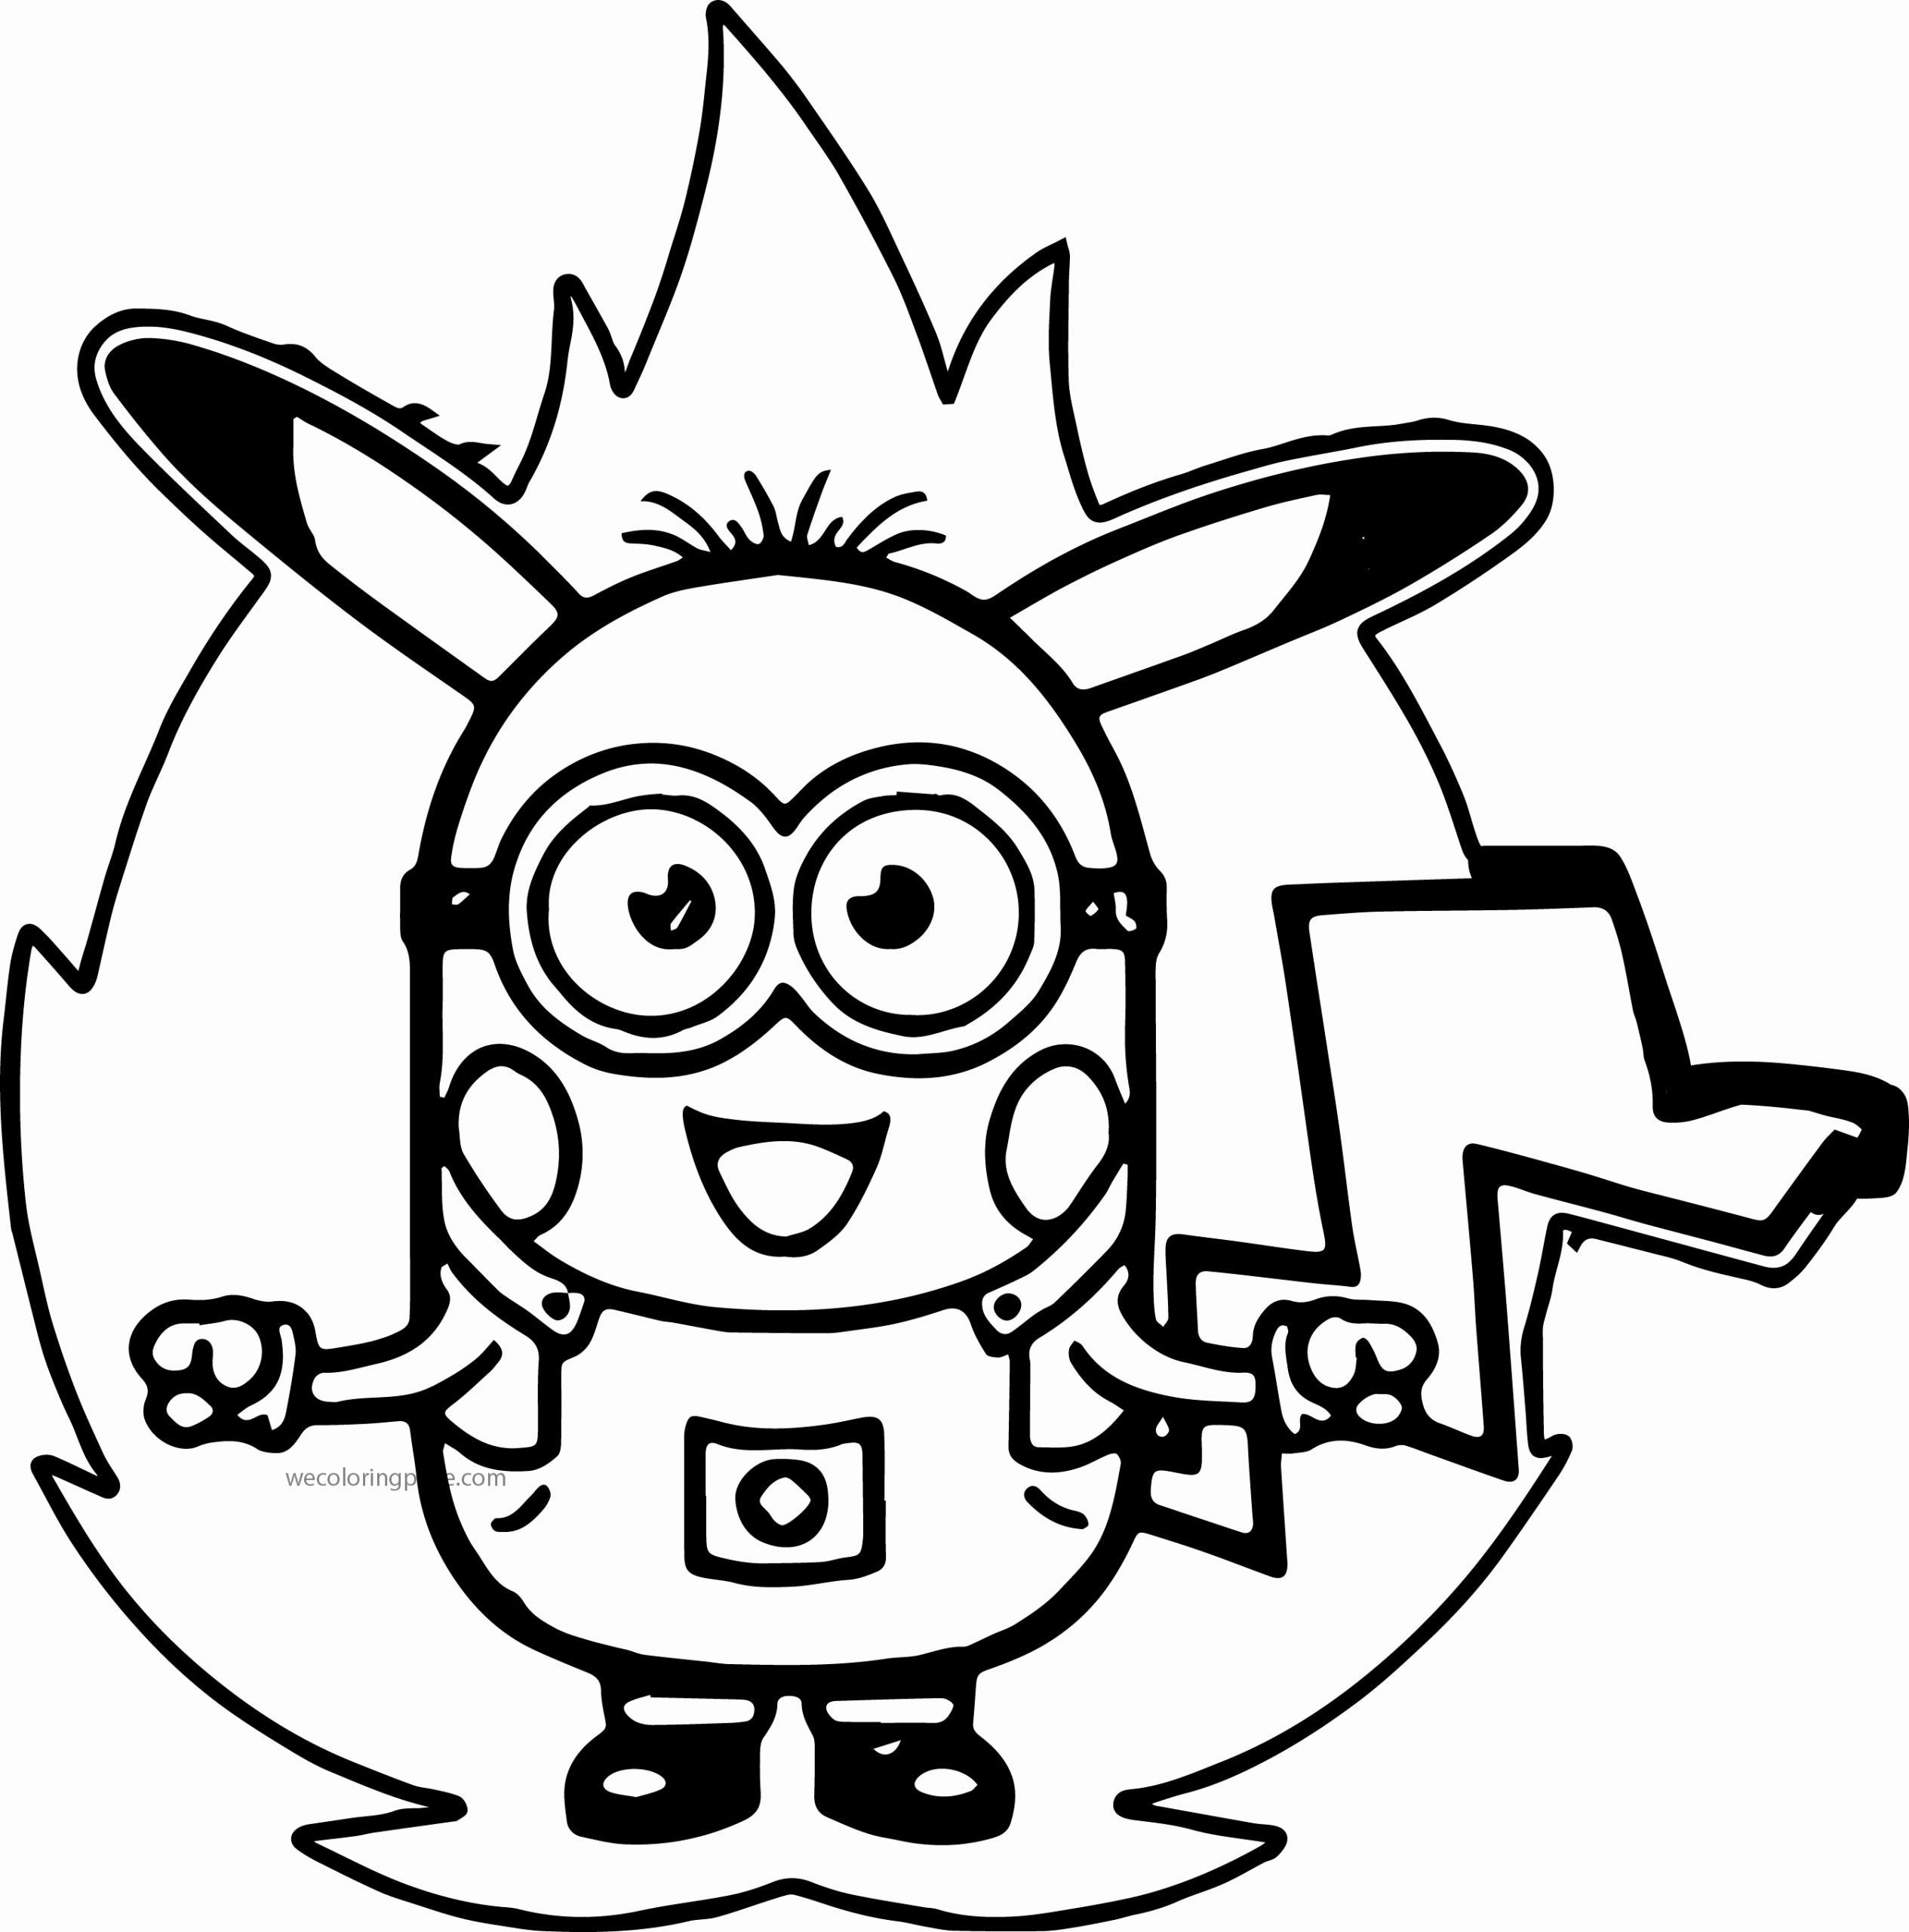 Pokemon Ball Coloring Page New Pokemon Coloring Pages Pokeball At Getcolorings In 2020 Minions Coloring Pages Pokemon Coloring Pages Minion Coloring Pages